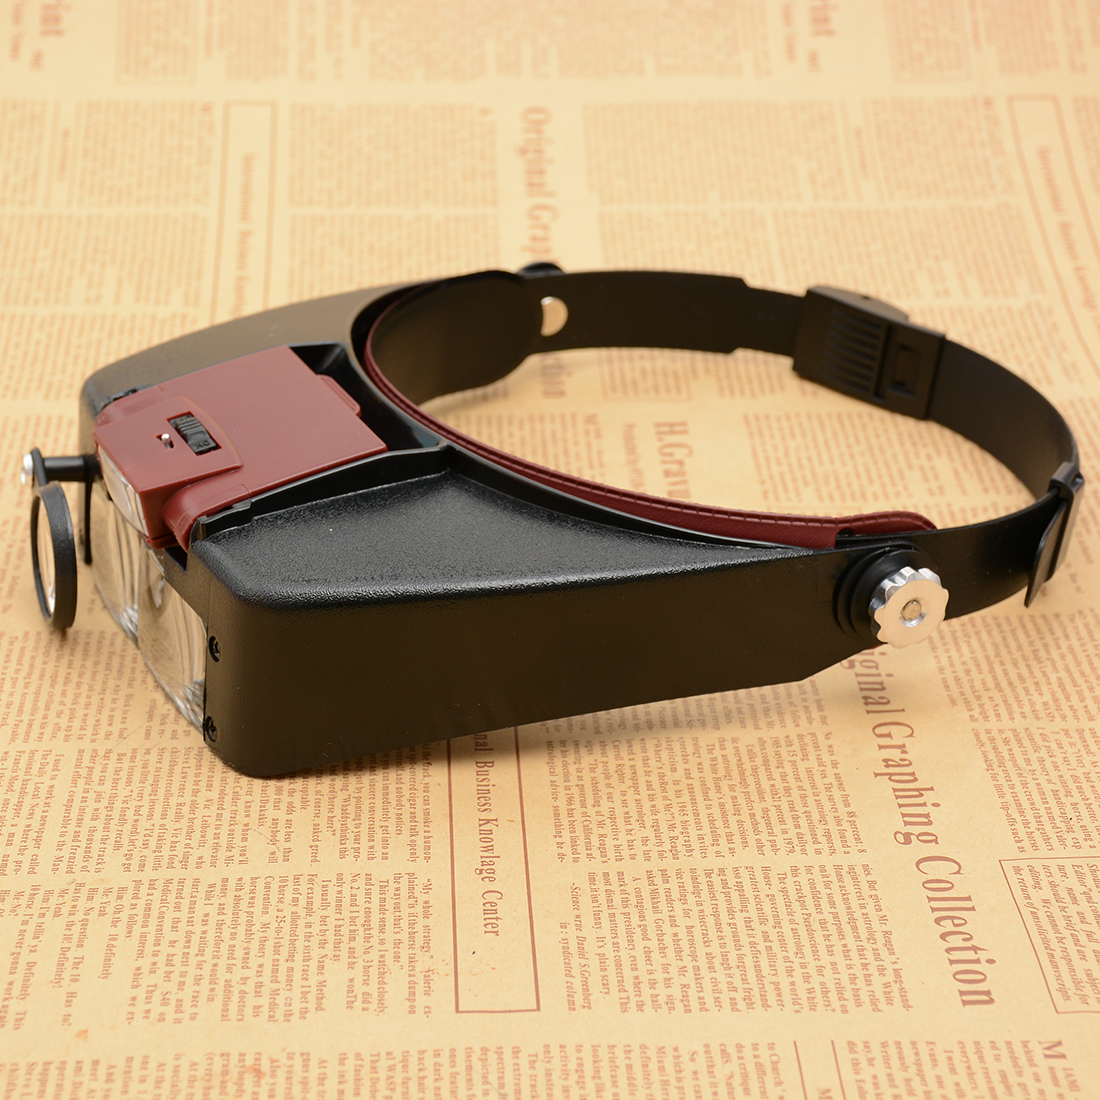 Loupe Microscope LED light Helmet Style Magnifier Glass Headband Magnifying Glasses Reading or Repair Use free shipping headband glasses magnifier led head light magnifying glass at once 2 pieces 5 groups of lenses loupe 2017 81001 g